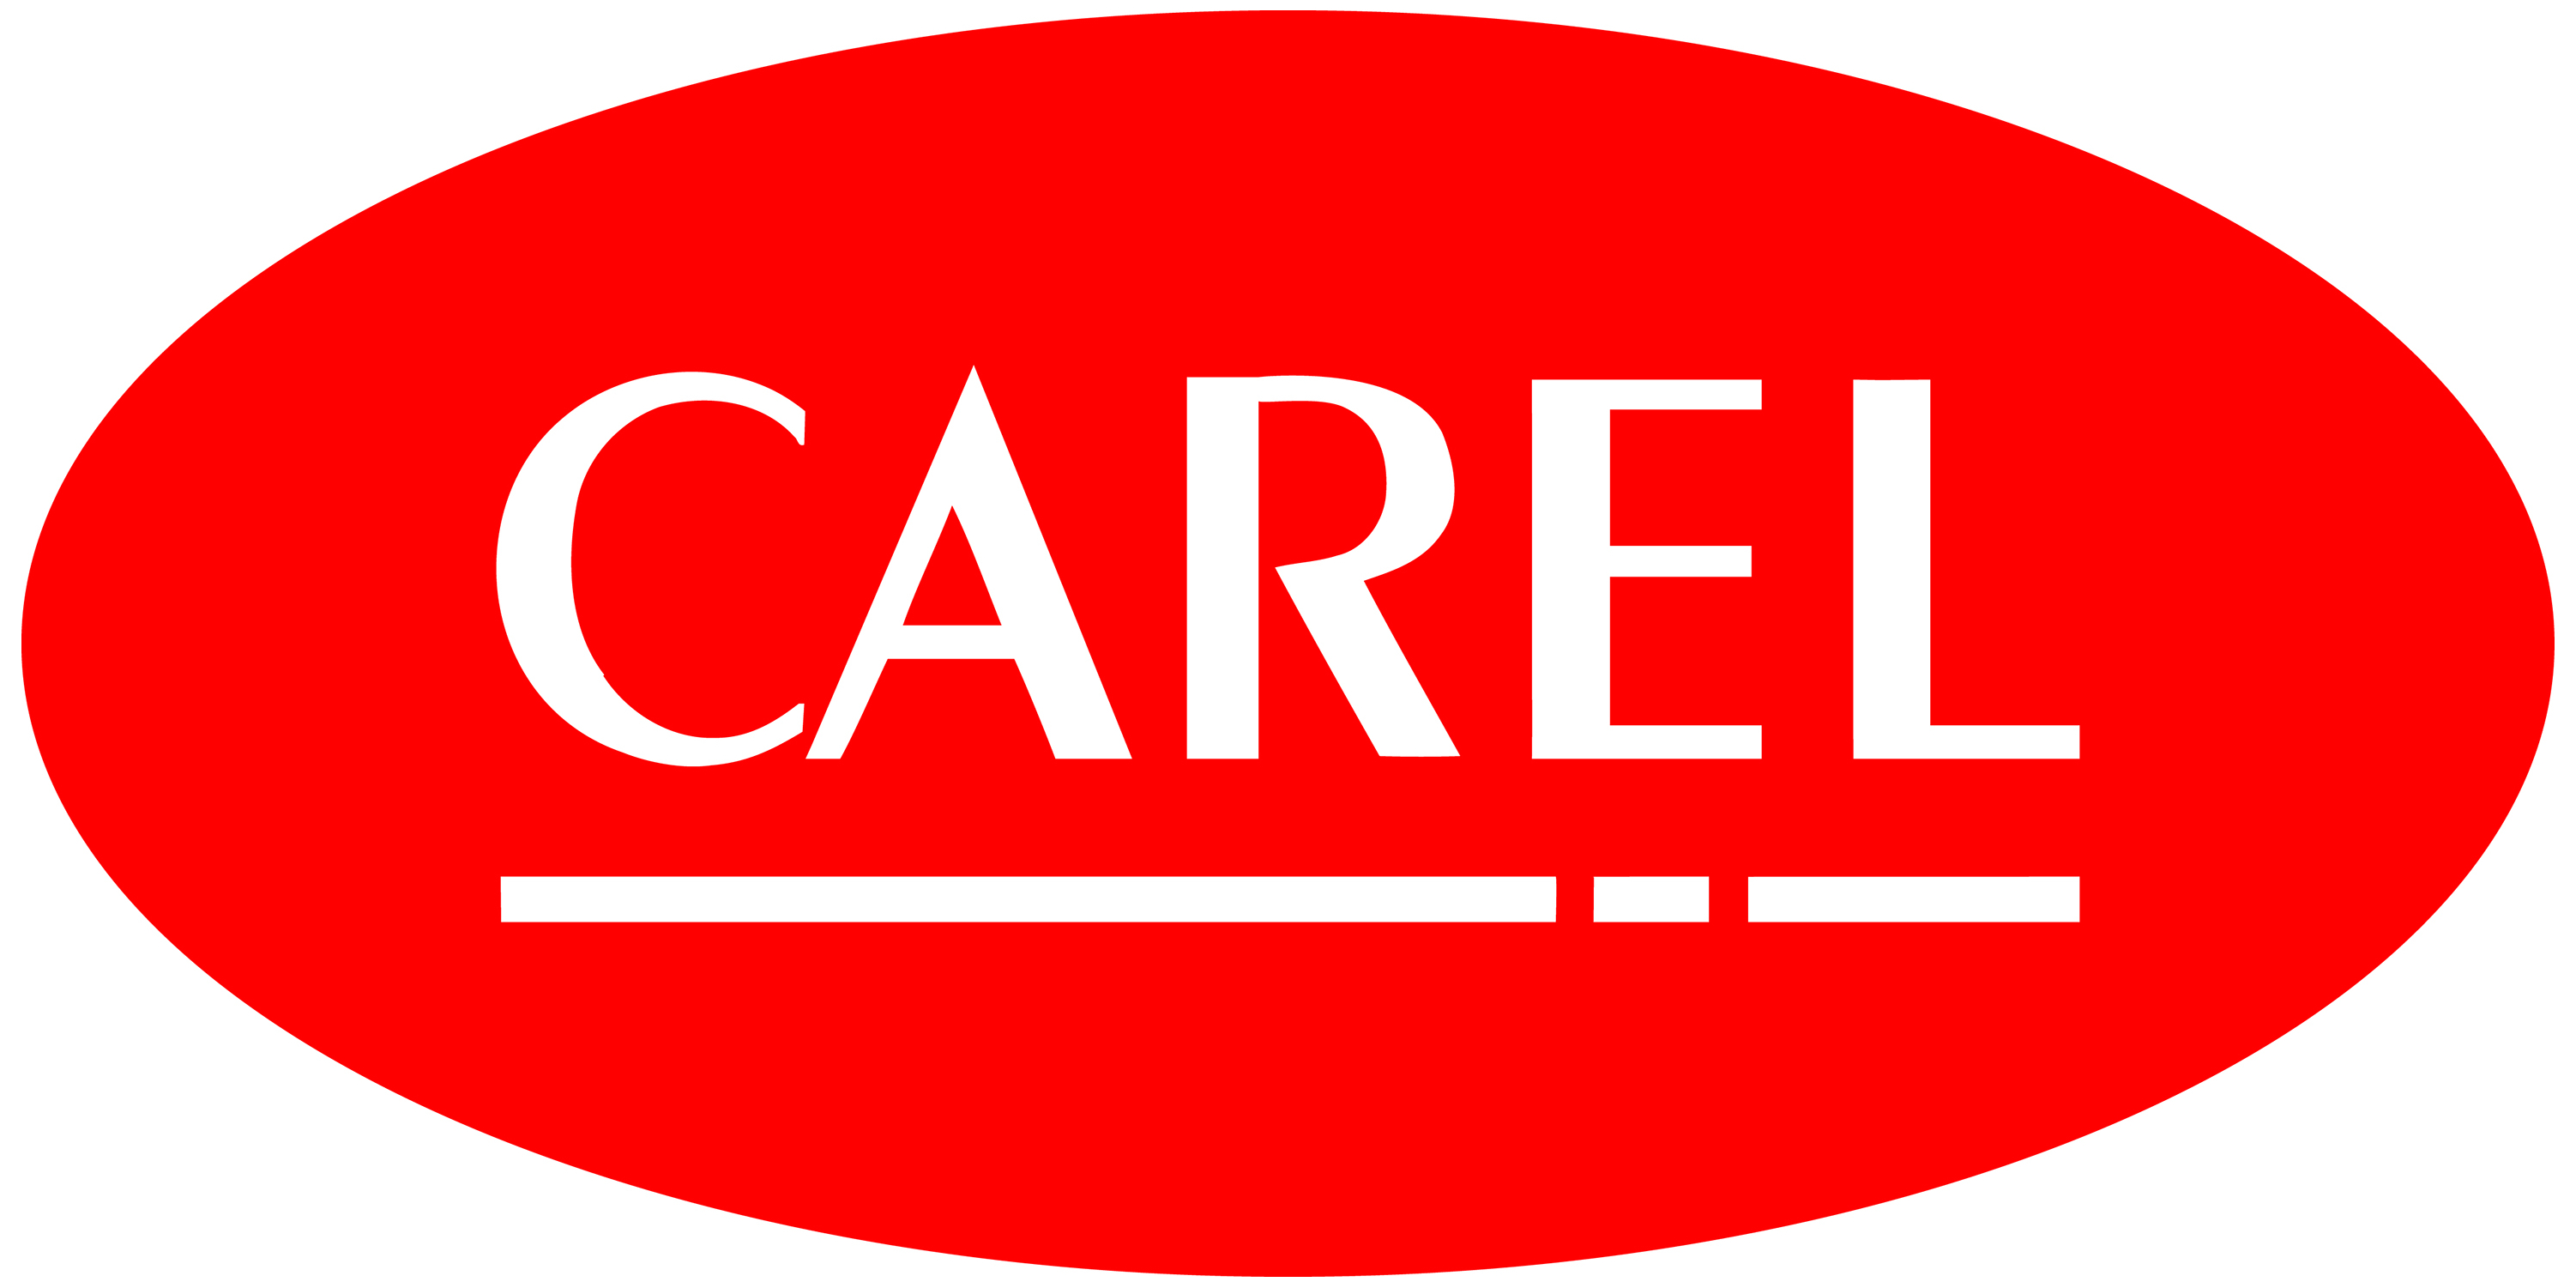 CAREL - Food Safety